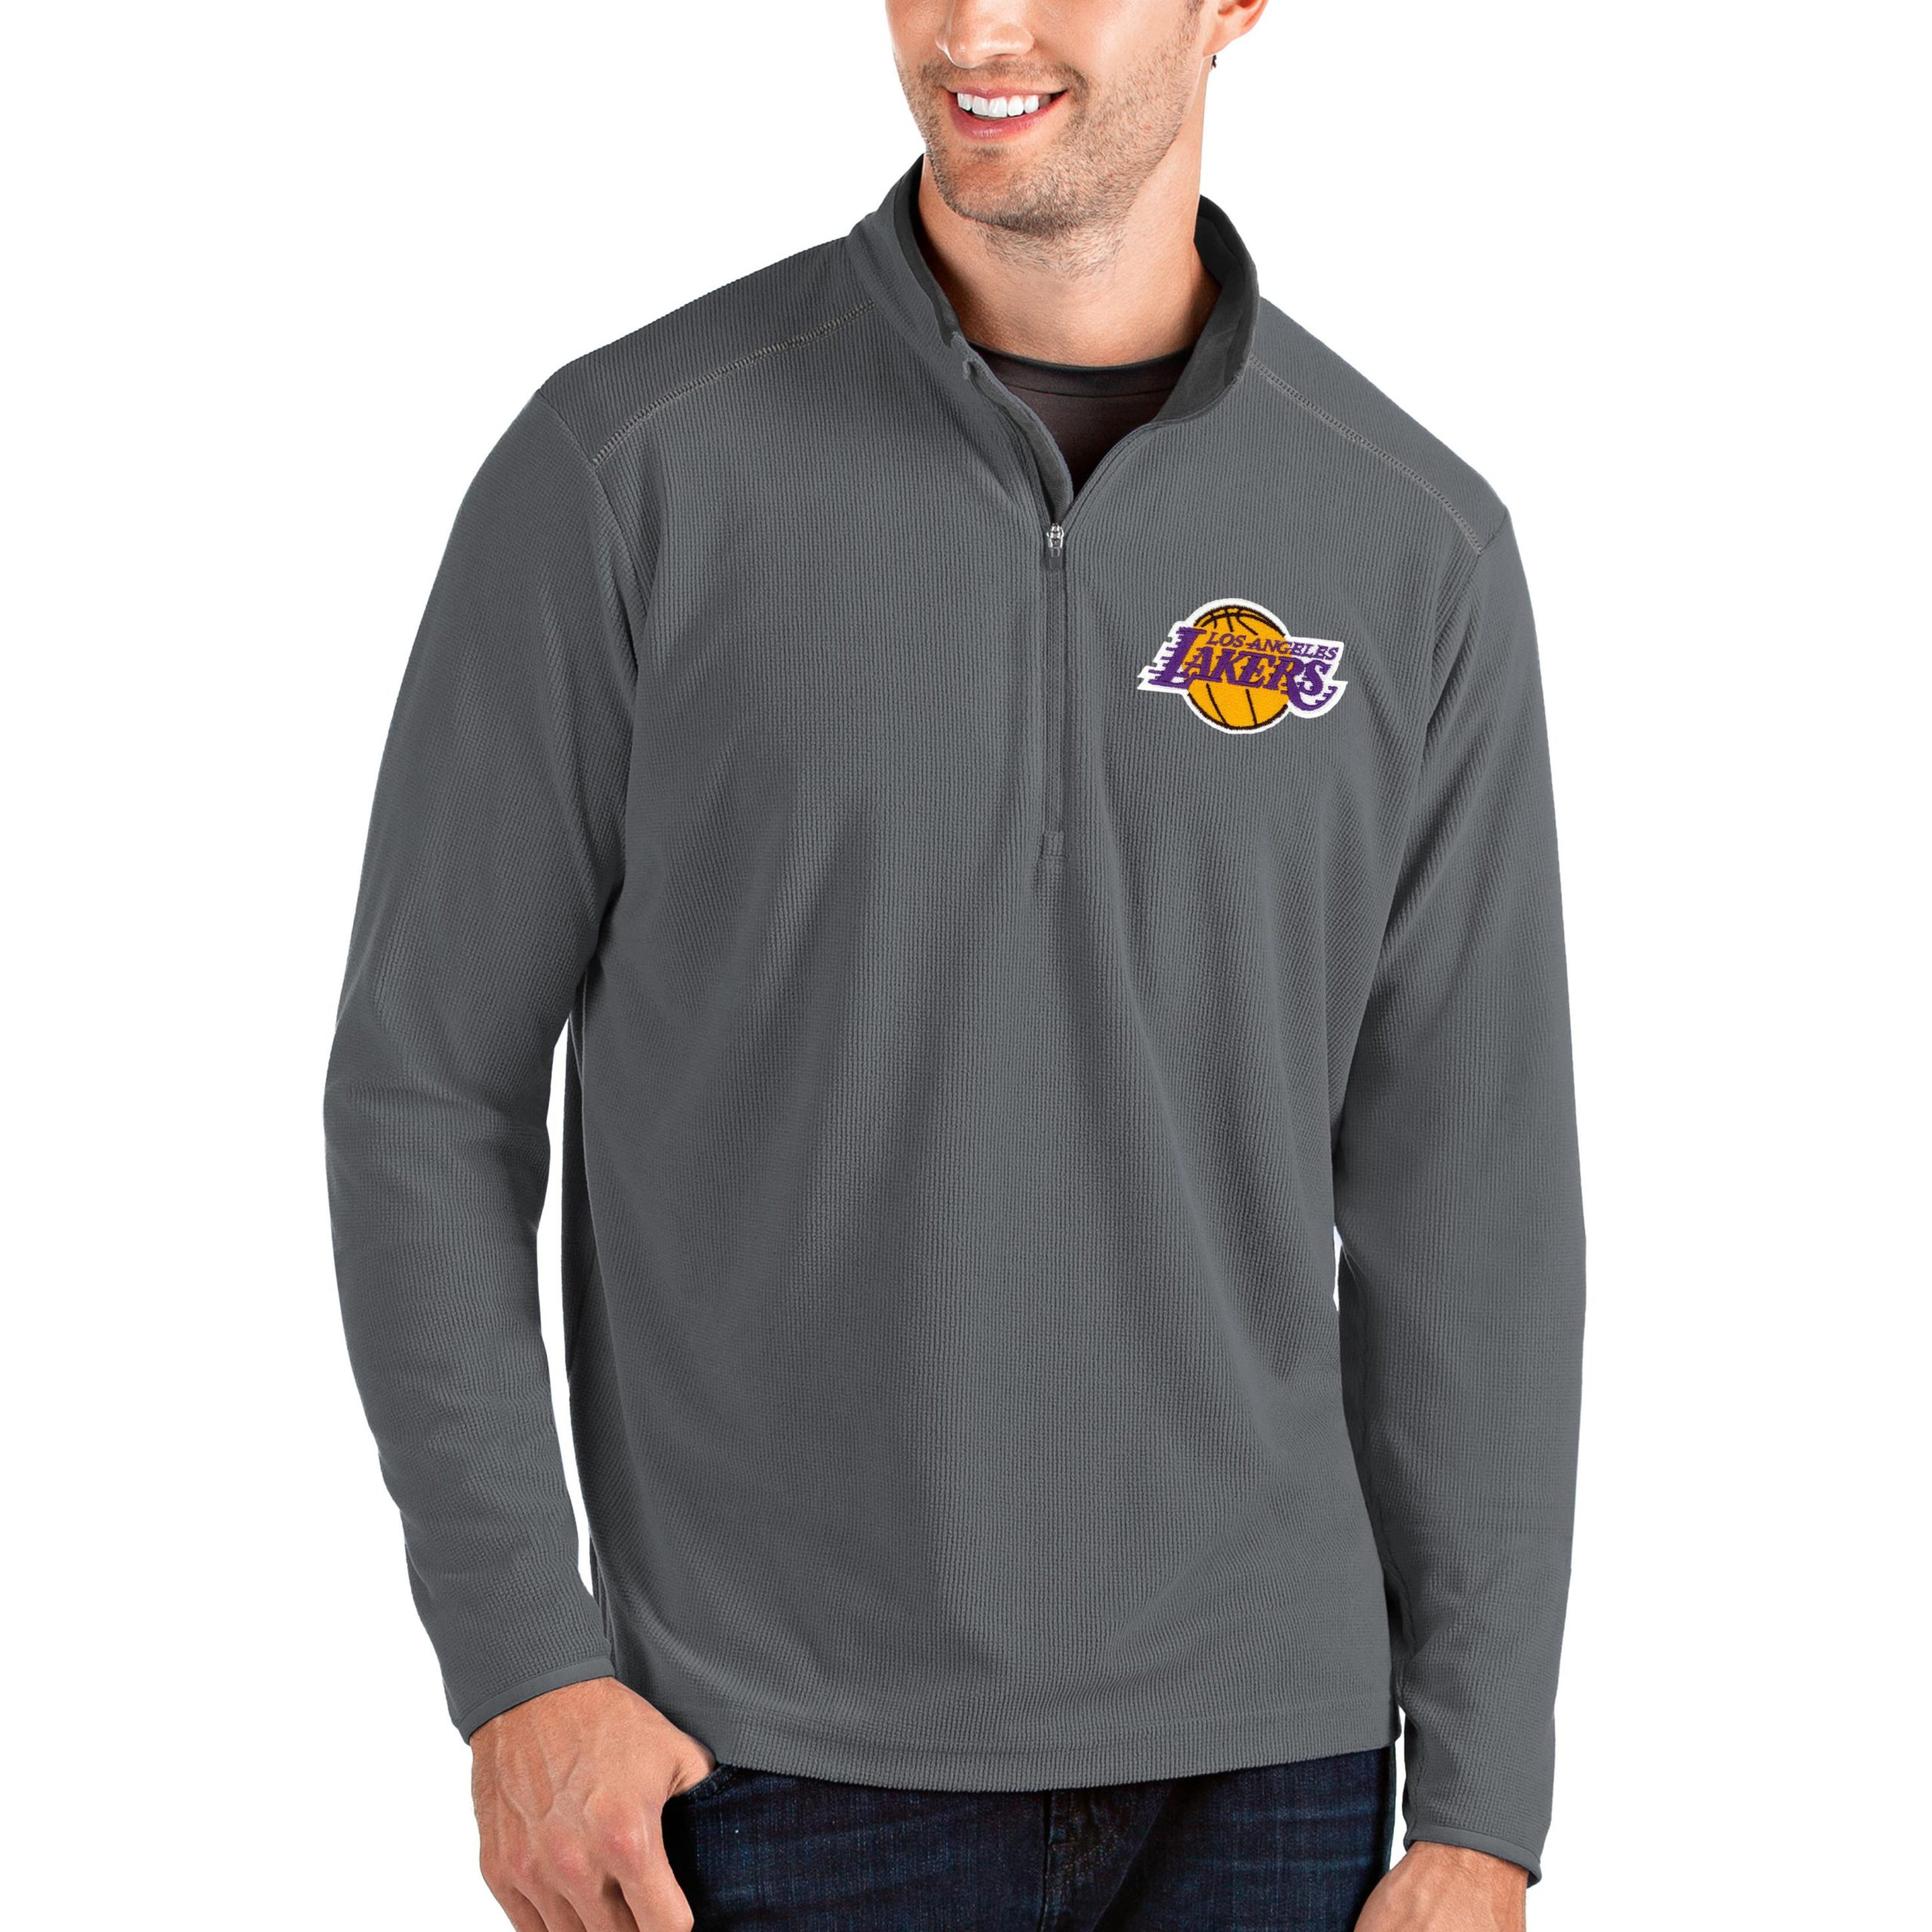 Los Angeles Lakers Antigua Big & Tall Glacier Quarter-Zip Pullover Jacket - Gray/Gray